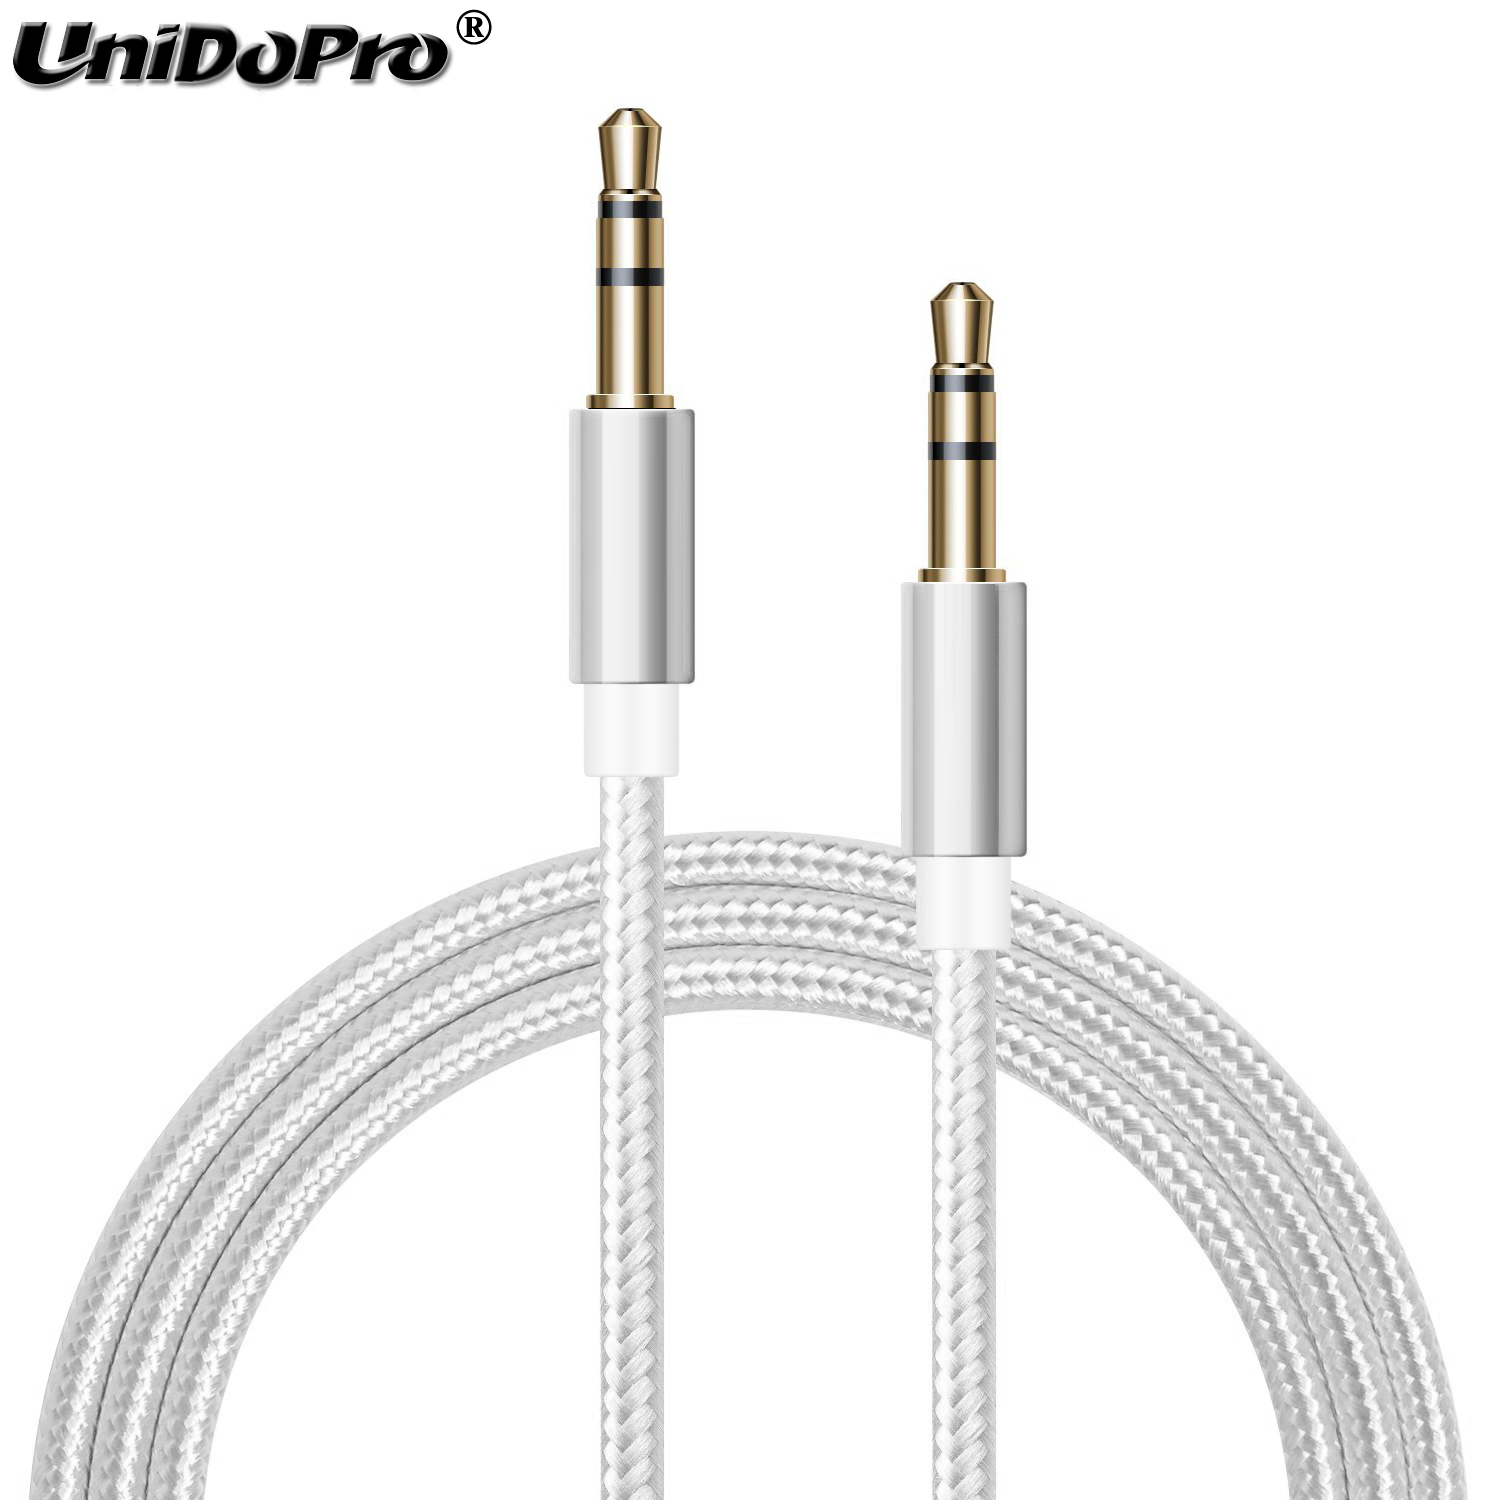 3.5mm Jack Audio Cable 3.5mm Aux Cable for Car / PM4 PM3 / Headphone Aux Cord for Huawei Honor 9 8 P10 P9 Plus G8 P9 P8 Lite P7